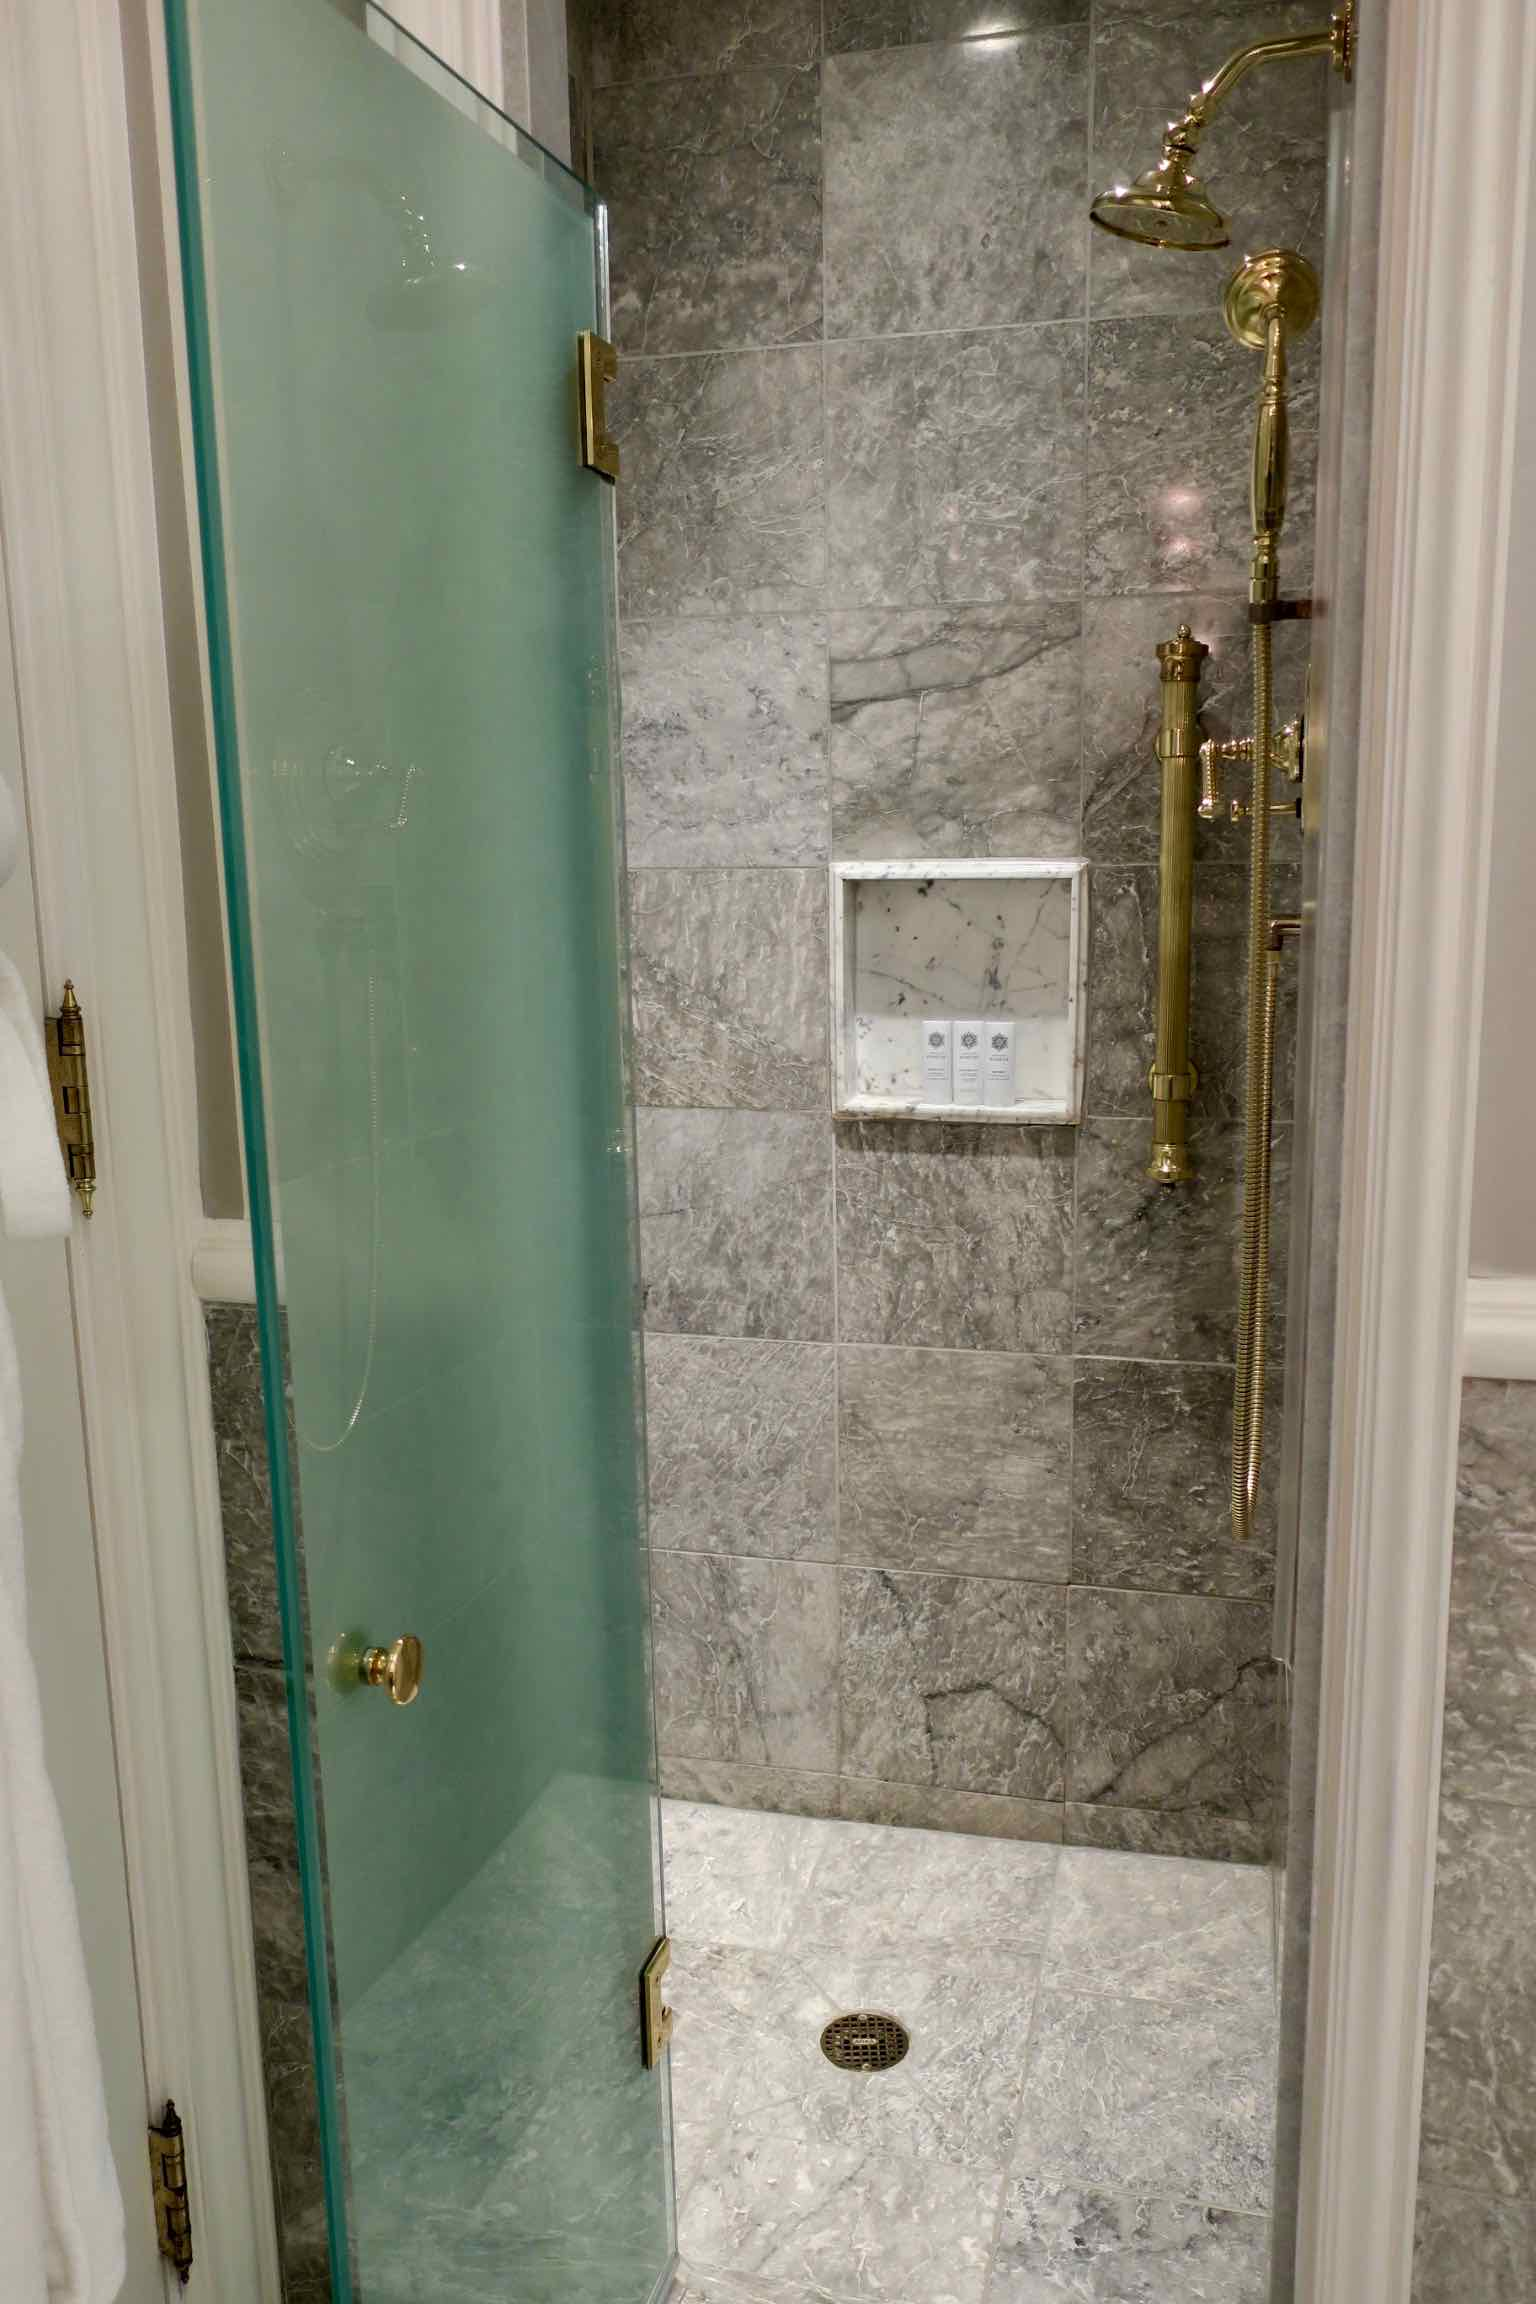 The St. Regis New York Superior Room shower